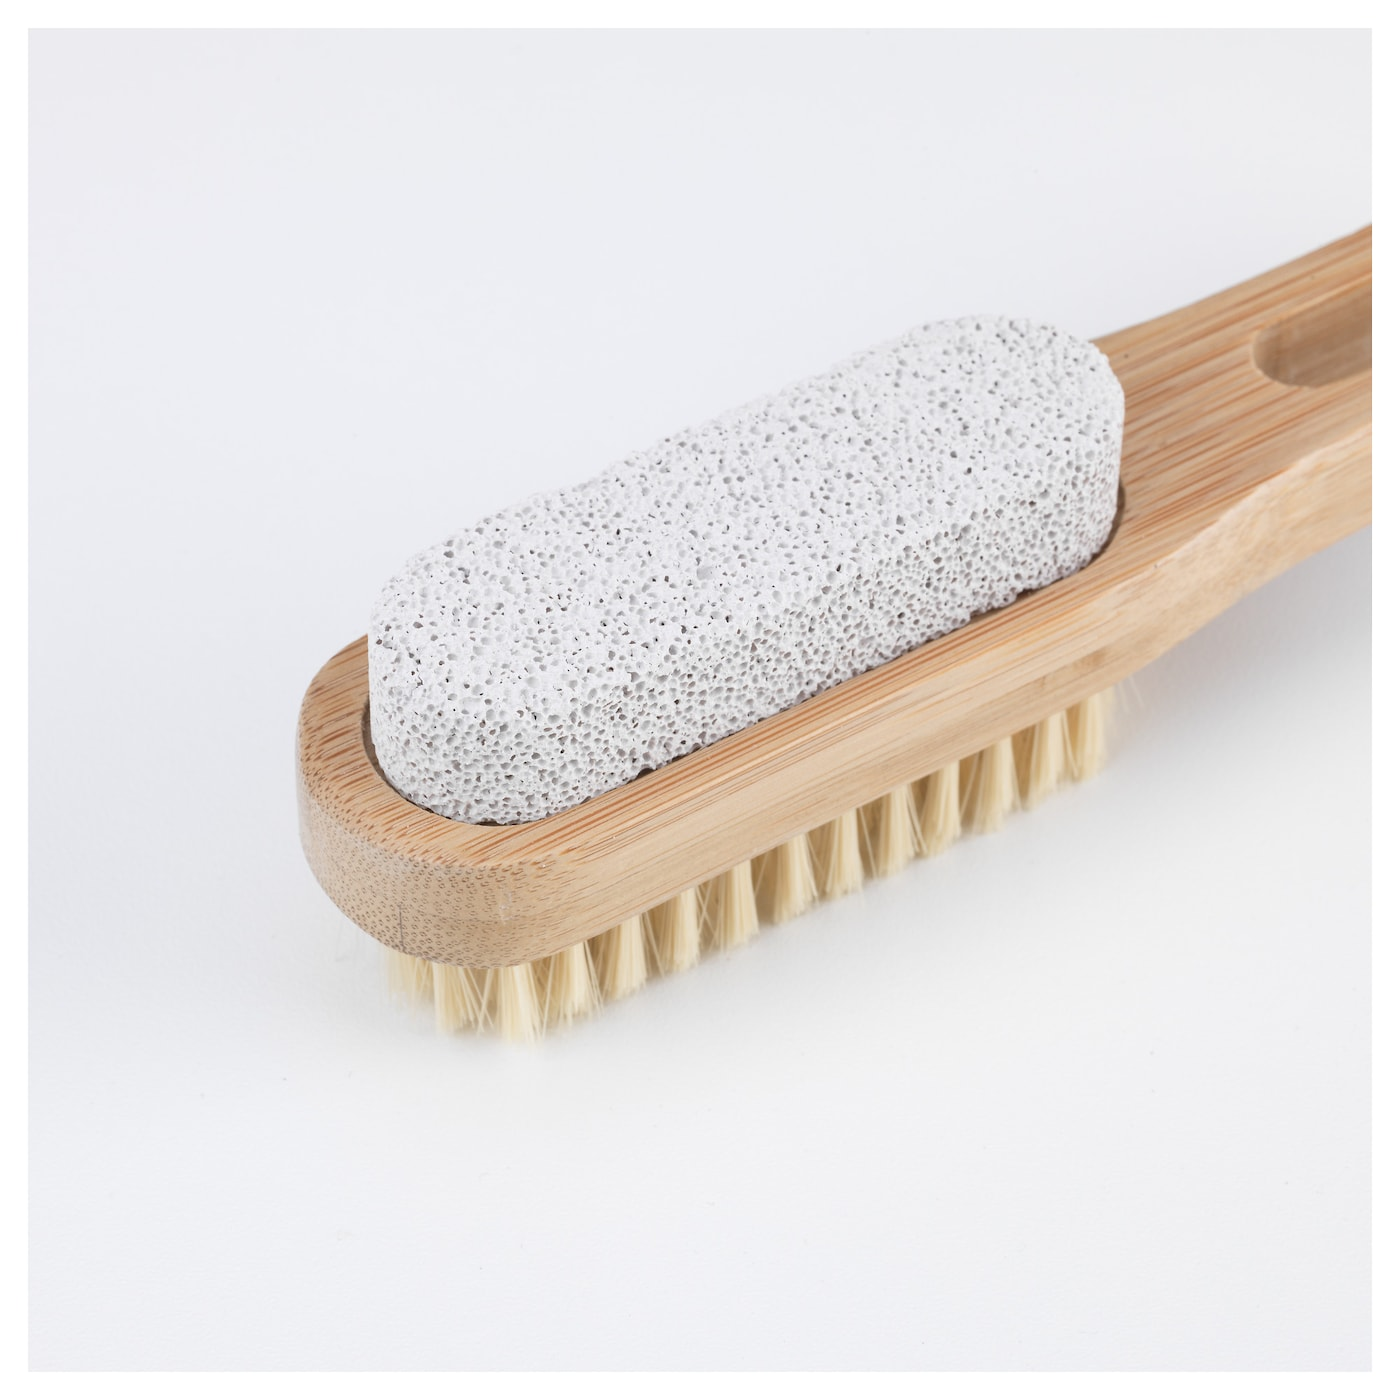 IKEA VINTER 2016 nail brush with pumice stone